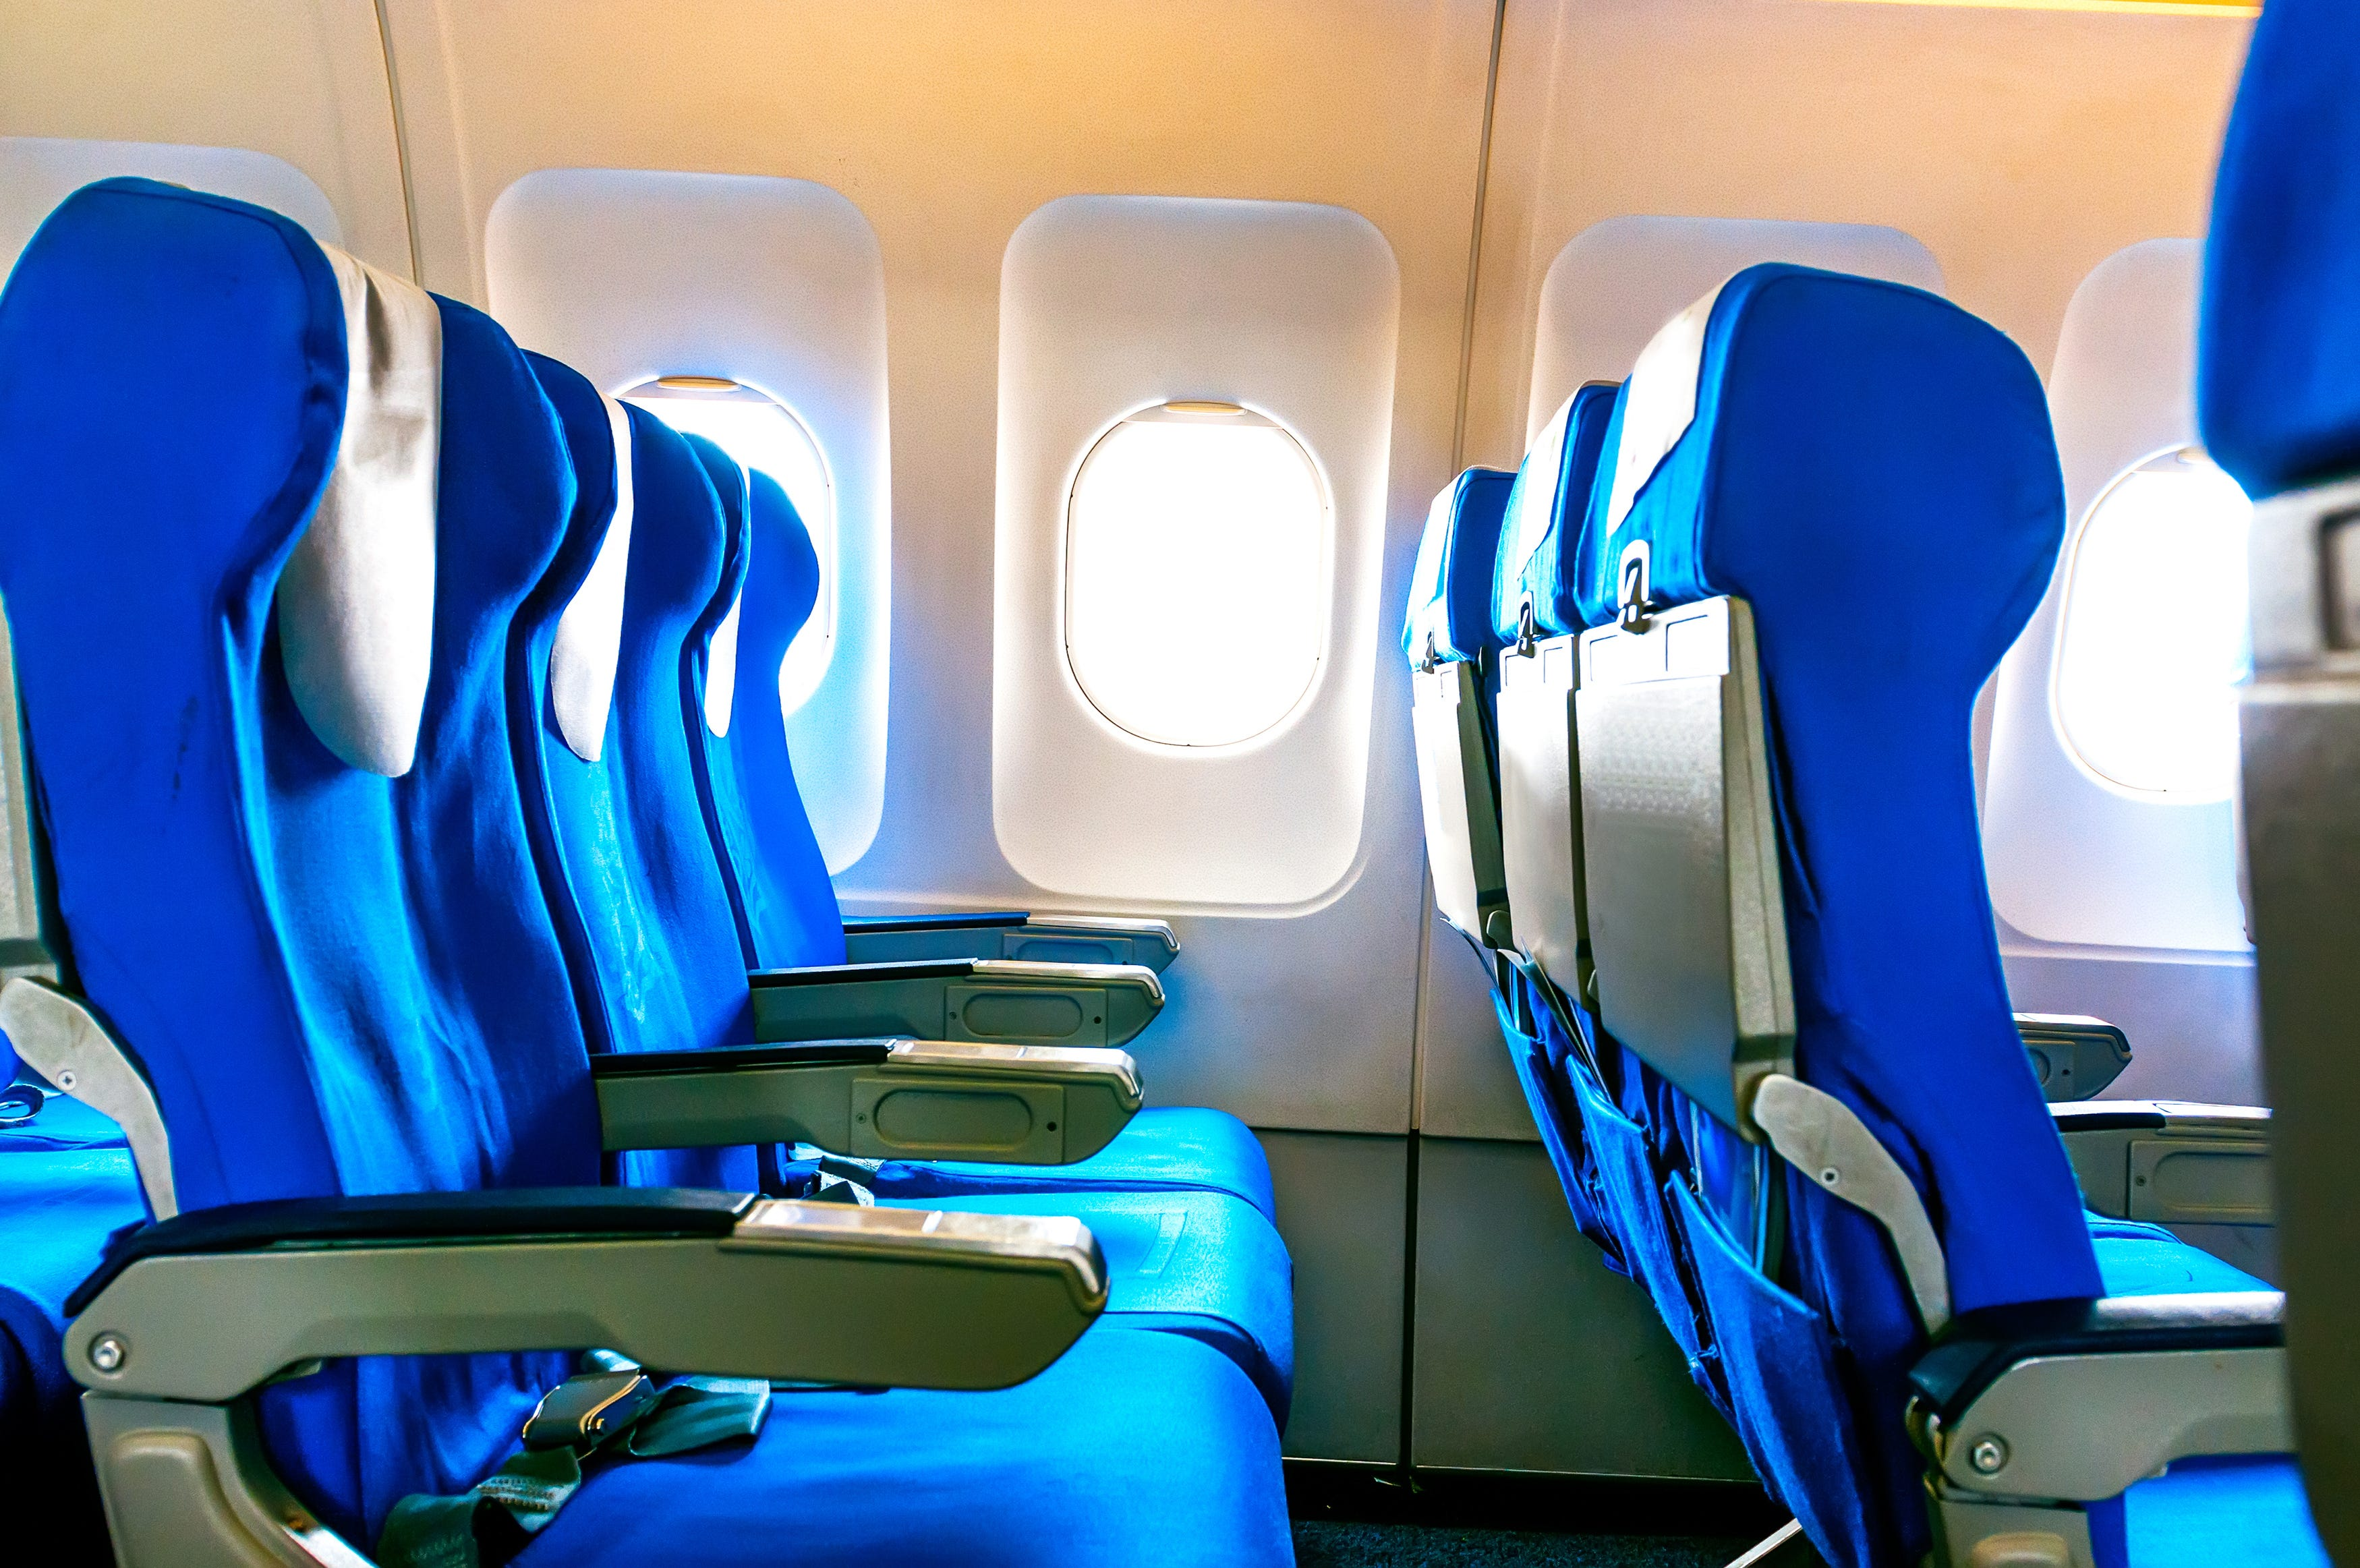 Slide 62 of 85: While traveling on aBoeing 737-800, I noticed there was no window in Row 10 on the left side. What is the reason for this?  There is often a missing window on jets since the air conditioning vents run up the wall there. Some airplanes also leave a window out in line with the fan section of the engine incase of a blade separation.